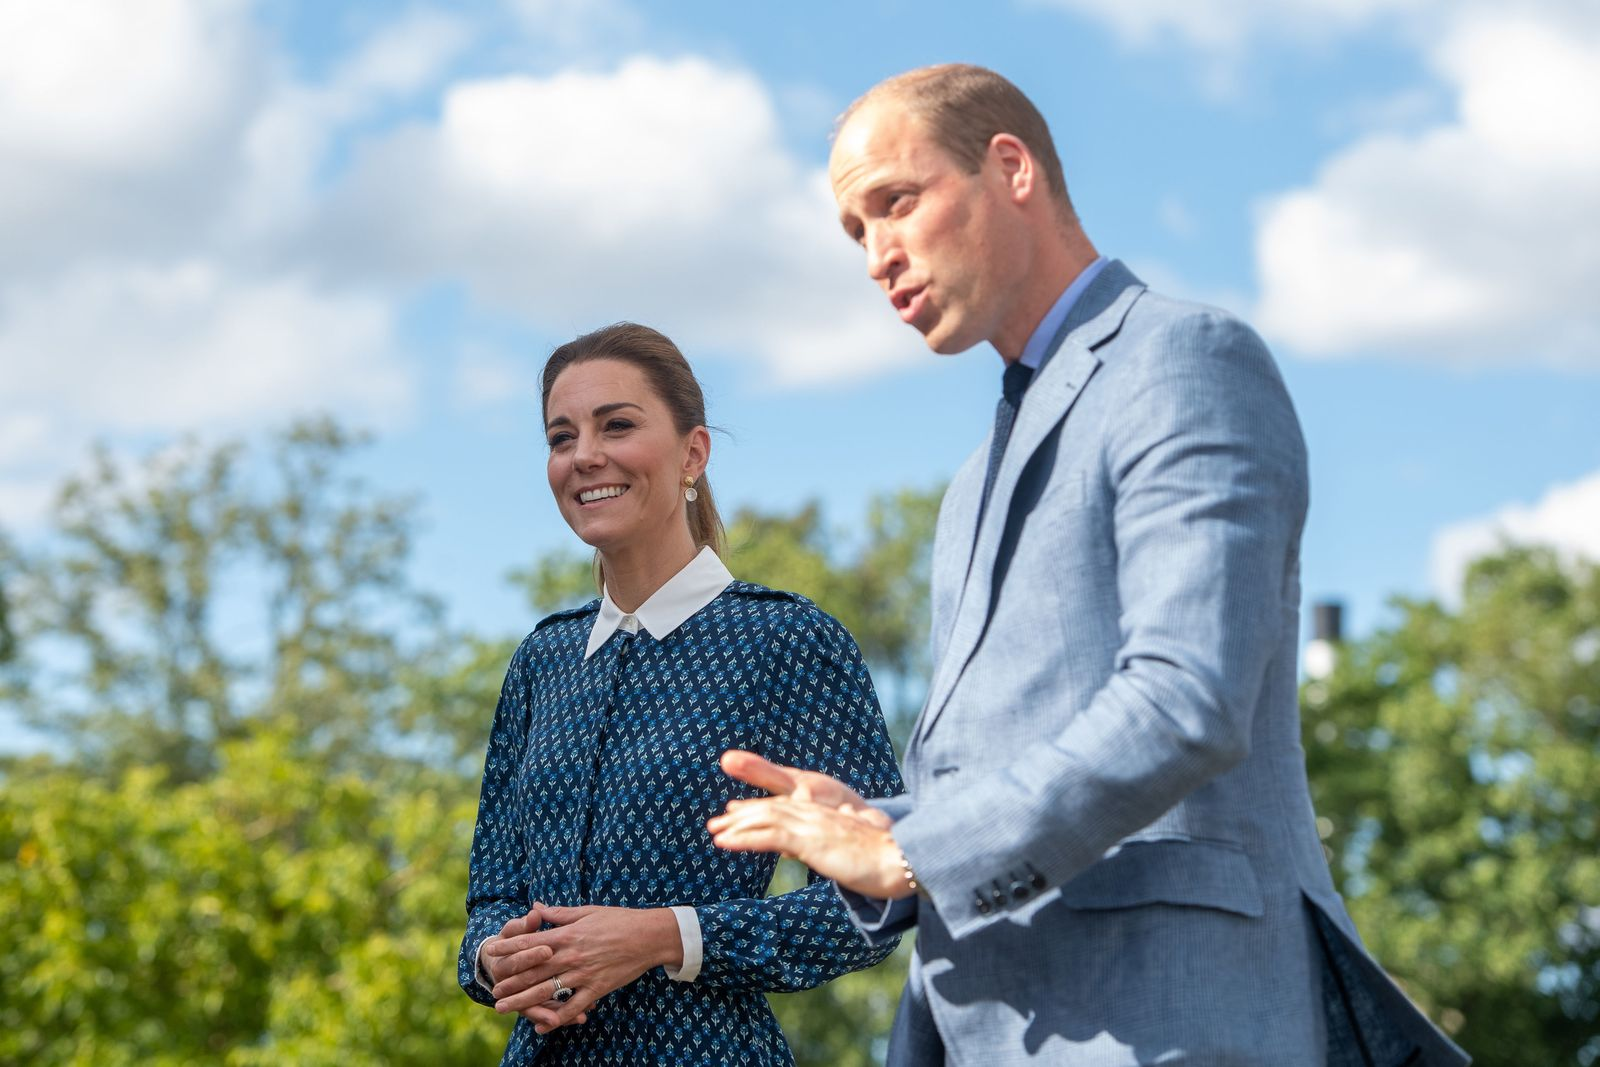 Duchess Kate and Prince William visit the Queen Elizabeth Hospital in King's Lynn on July 5, 2020, in Norfolk, England | Photo: Joe Giddens - WPA Pool/Getty Images